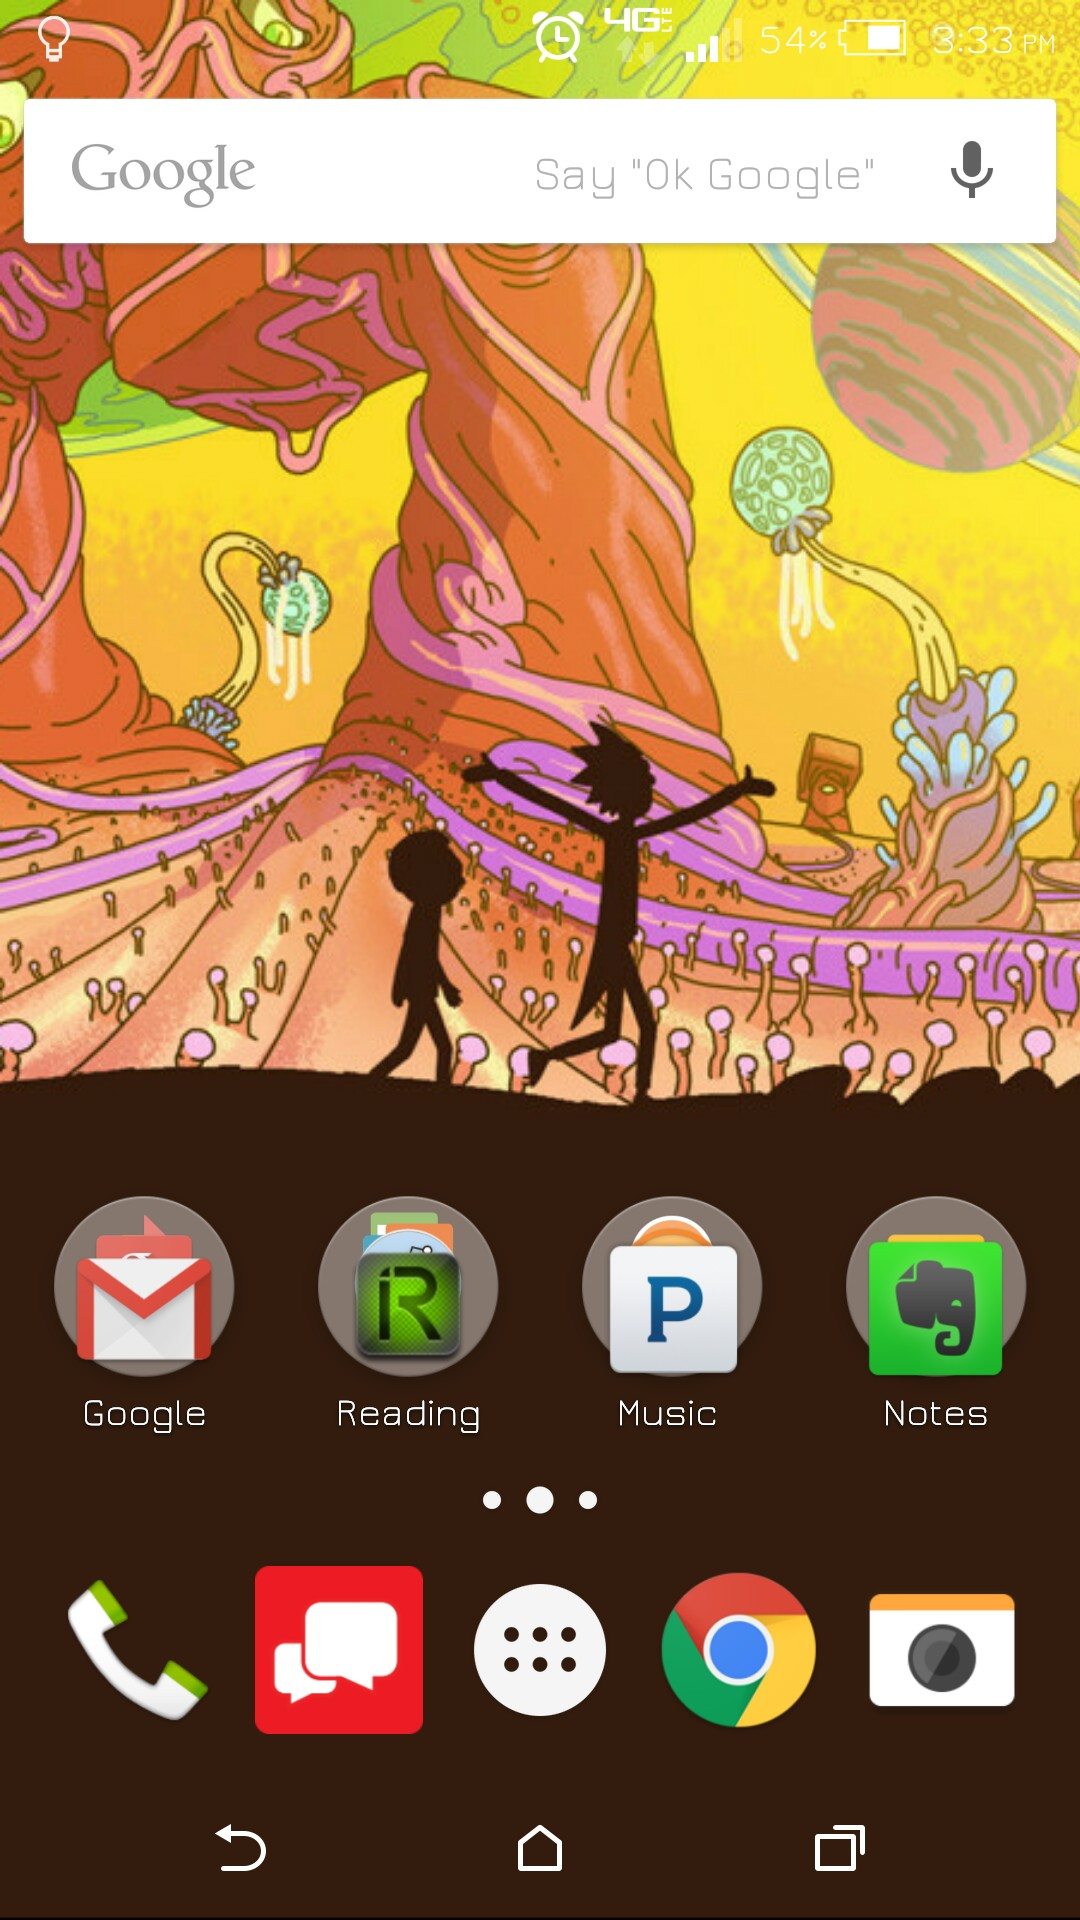 Gravity Falls Wallpaper For Android 33 Rick And Morty Wallpapers 183 ① Download Free Cool High